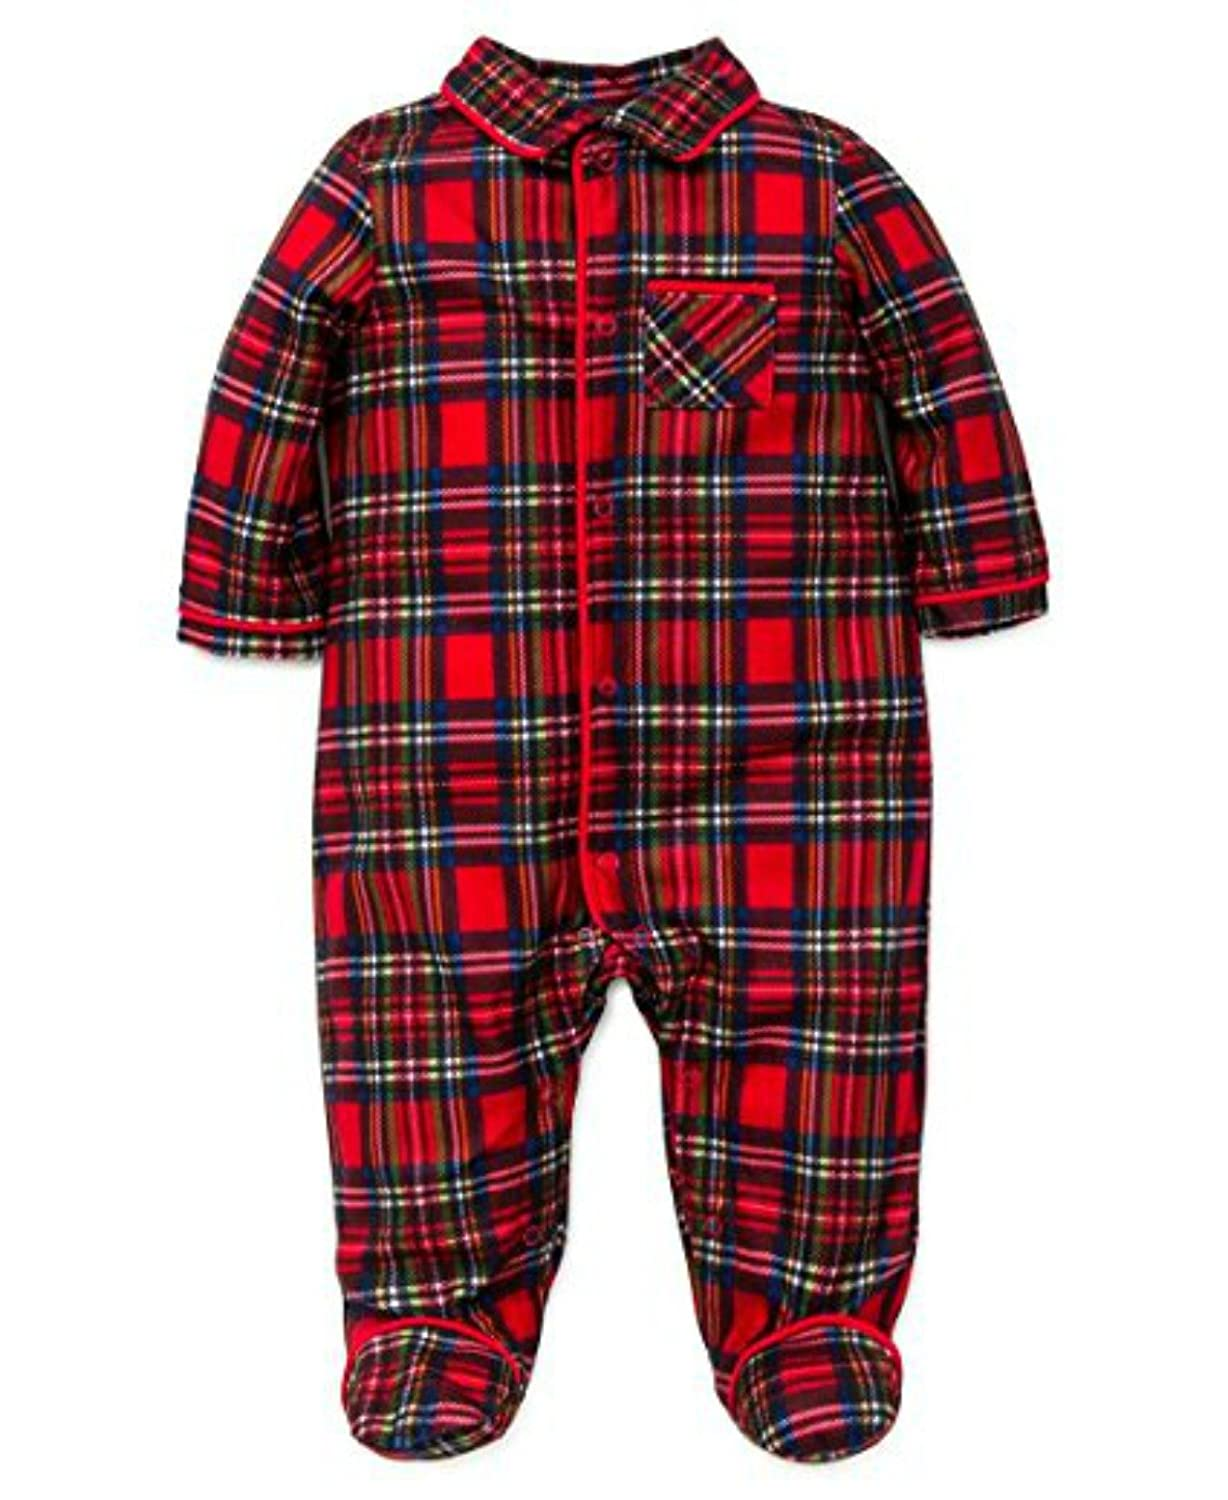 Little ME Baby Boy's Plaid Holiday Pajama Footie